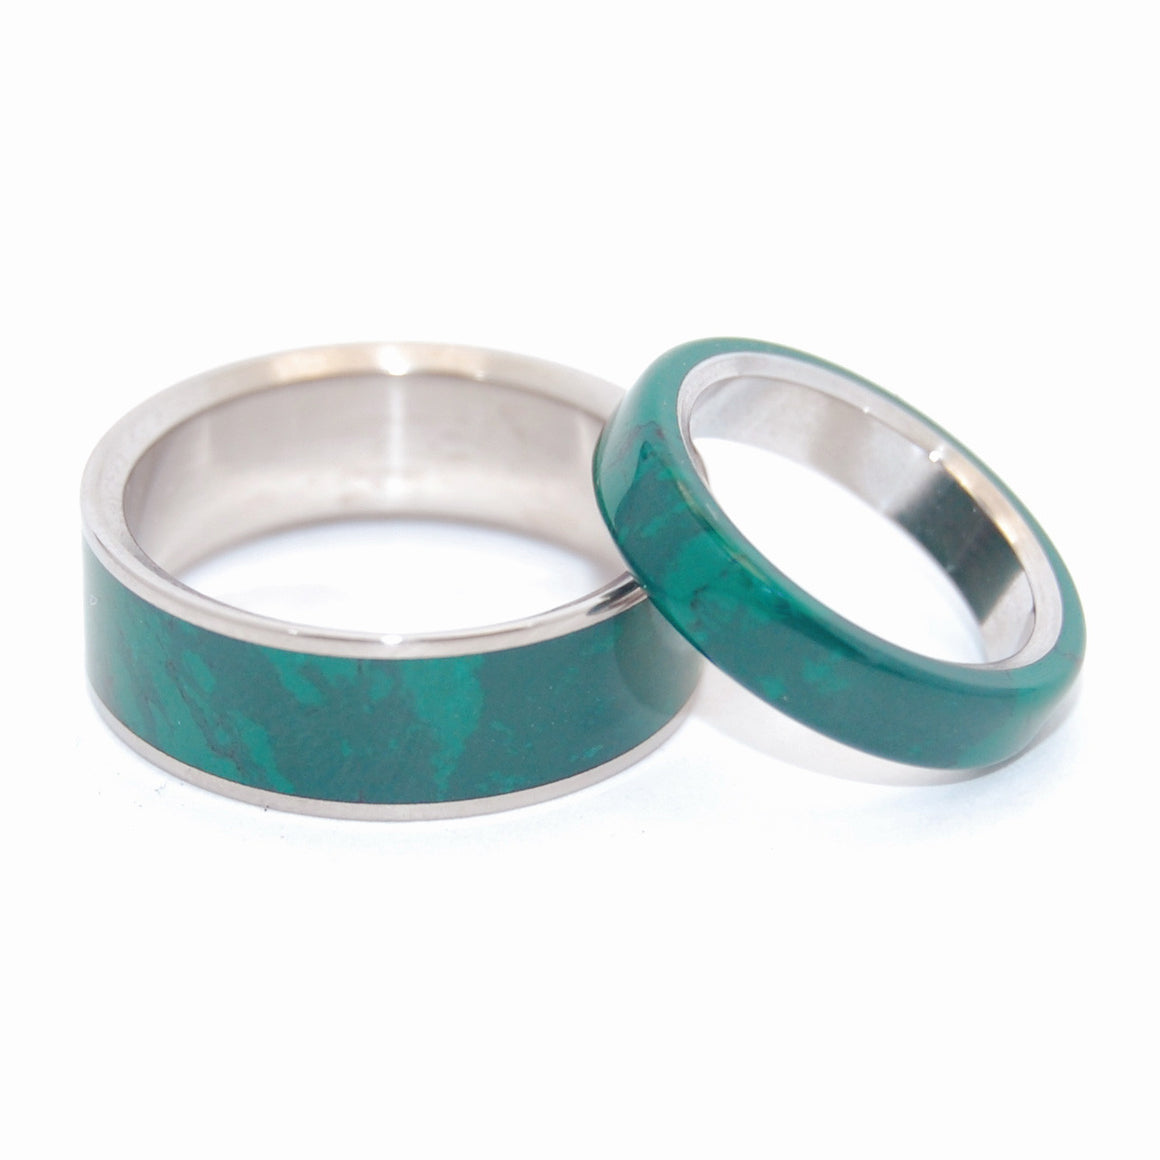 JADE SET | Jade Stone & Titanium Wedding Rings Set - Minter and Richter Designs